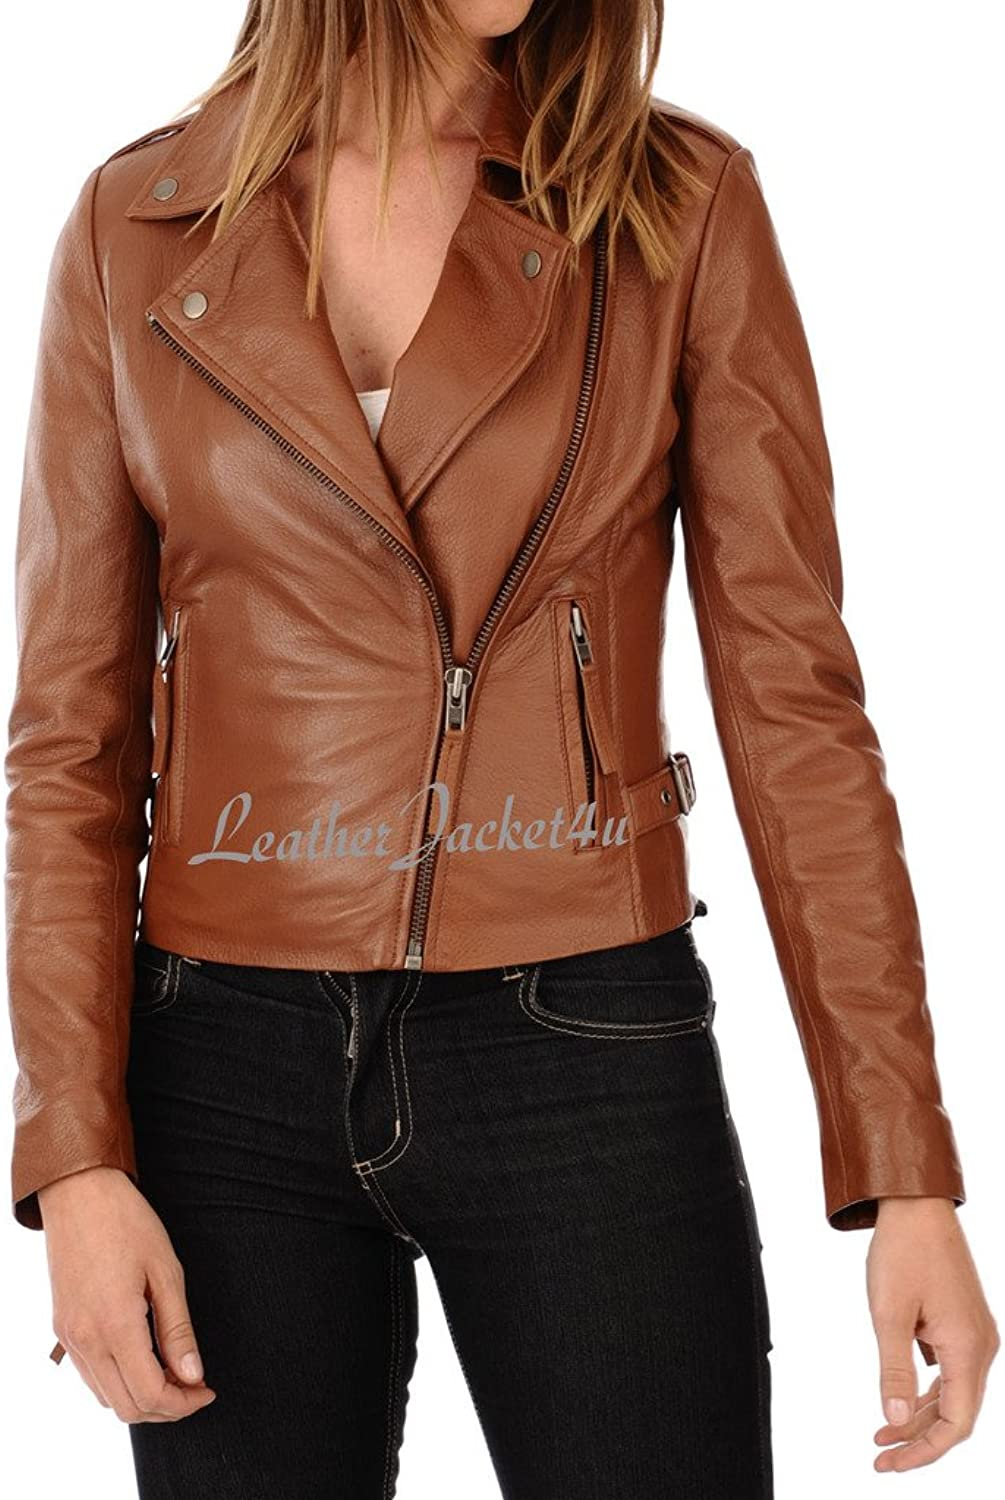 LeatherJacket4u Women Leather Jacket 62